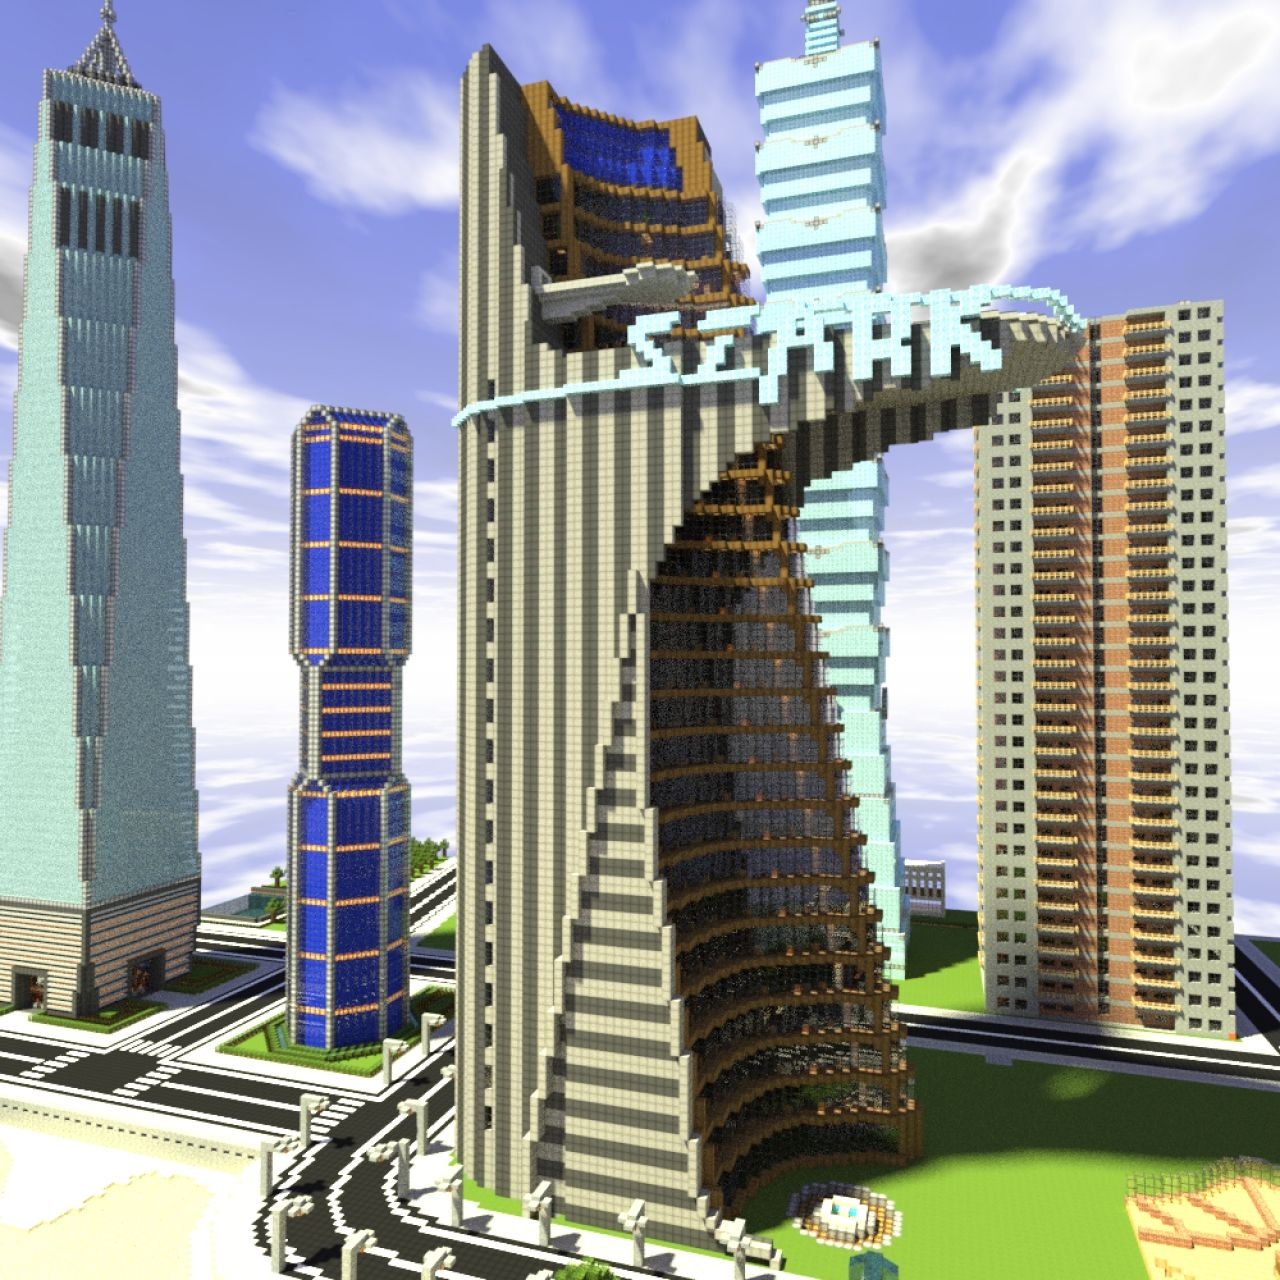 The New Stark Tower By Cooljvargas/Interior By Mikeyto1o